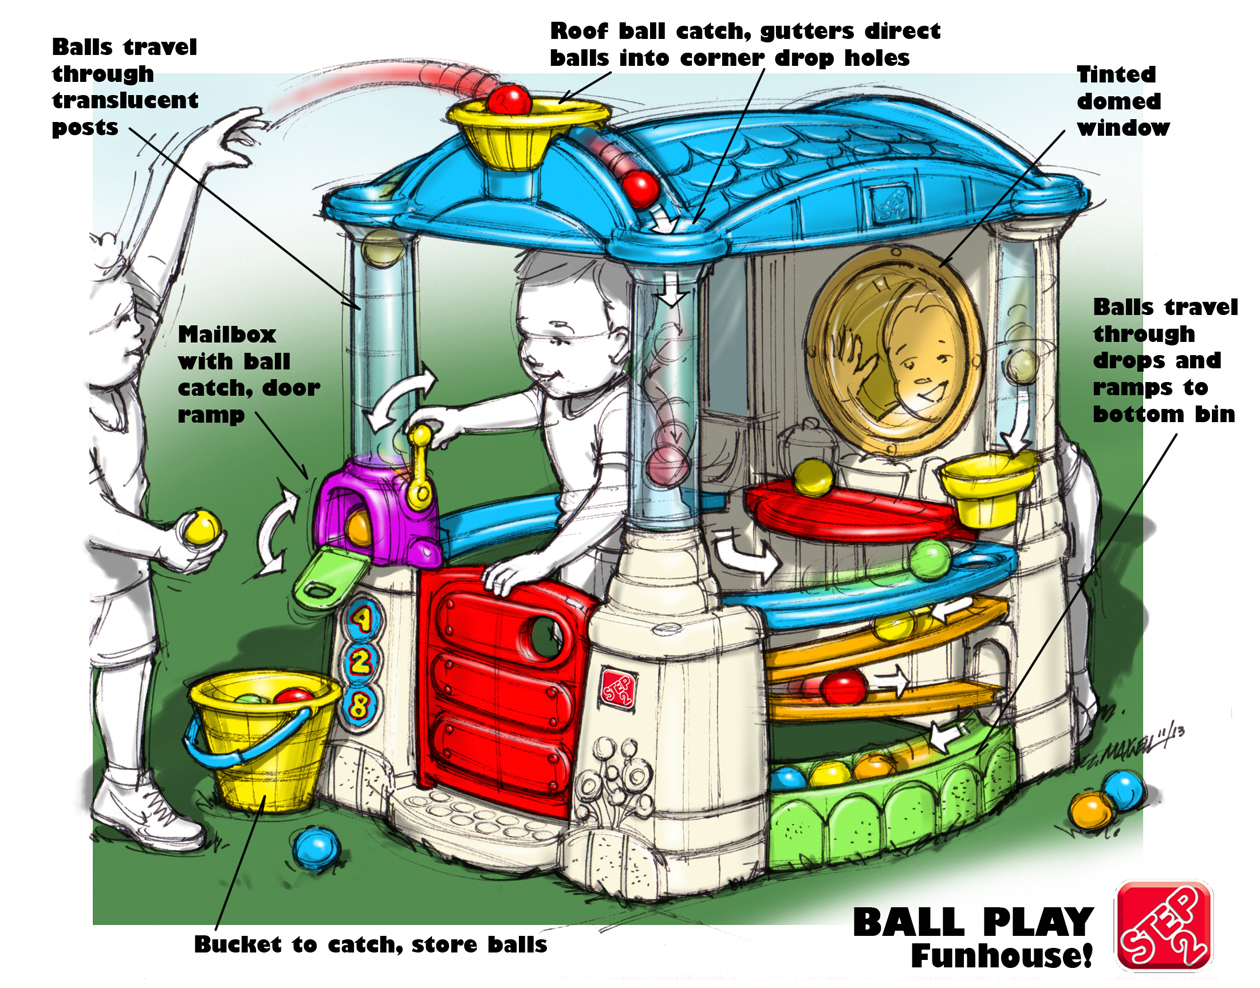 Ball Play Funhouse